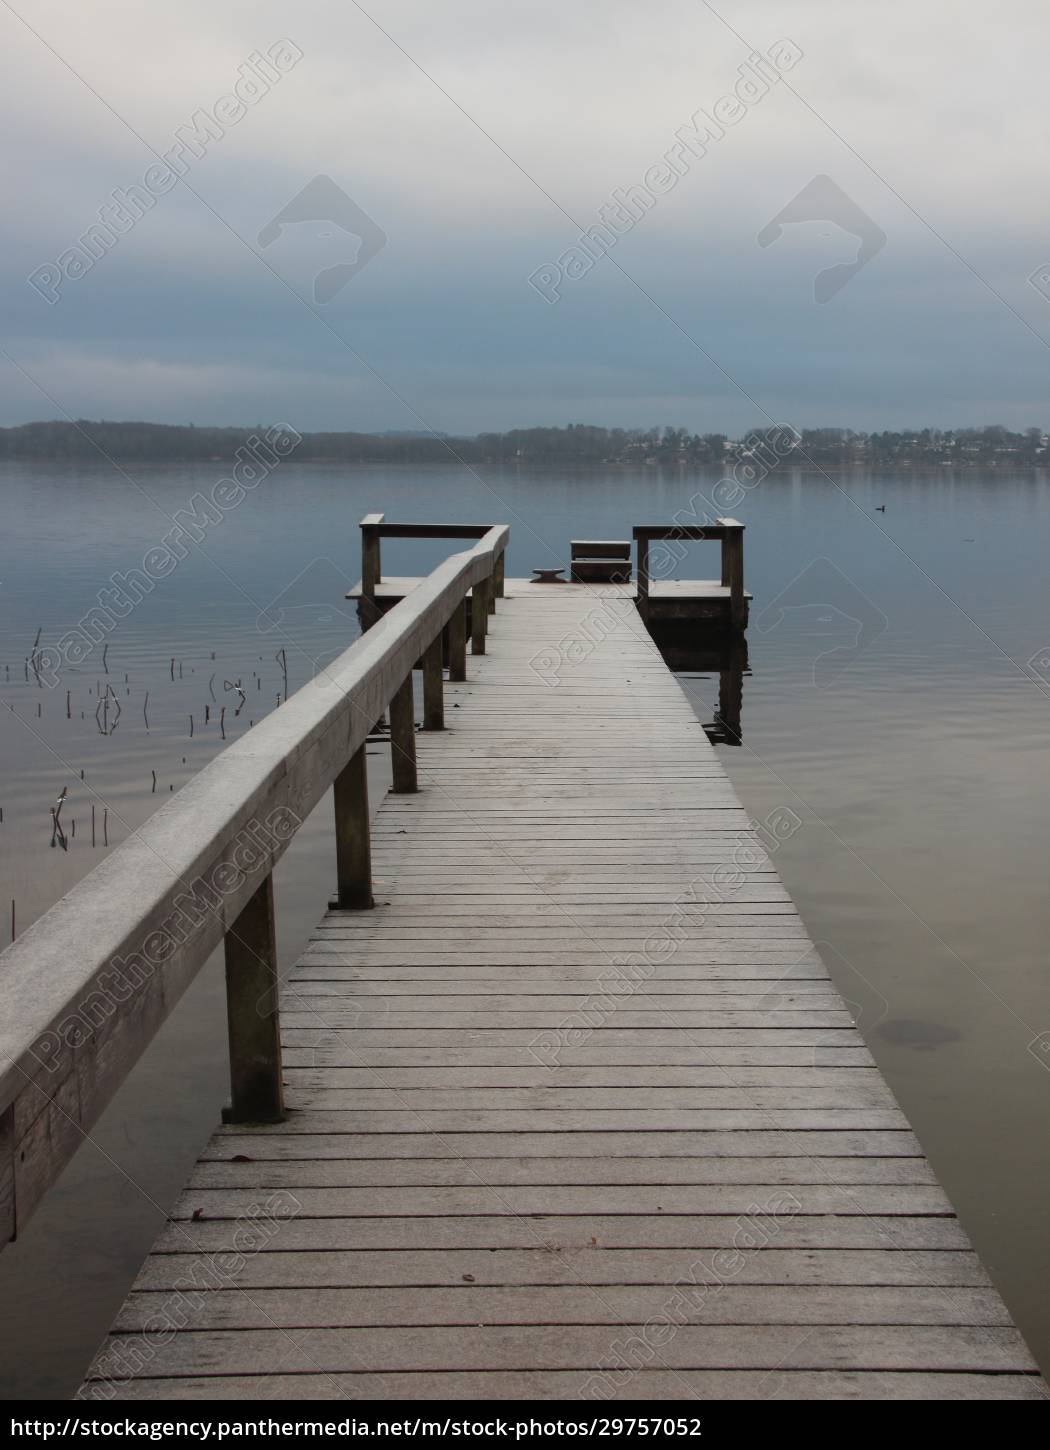 empty, pier, with, wooden, railing, in - 29757052